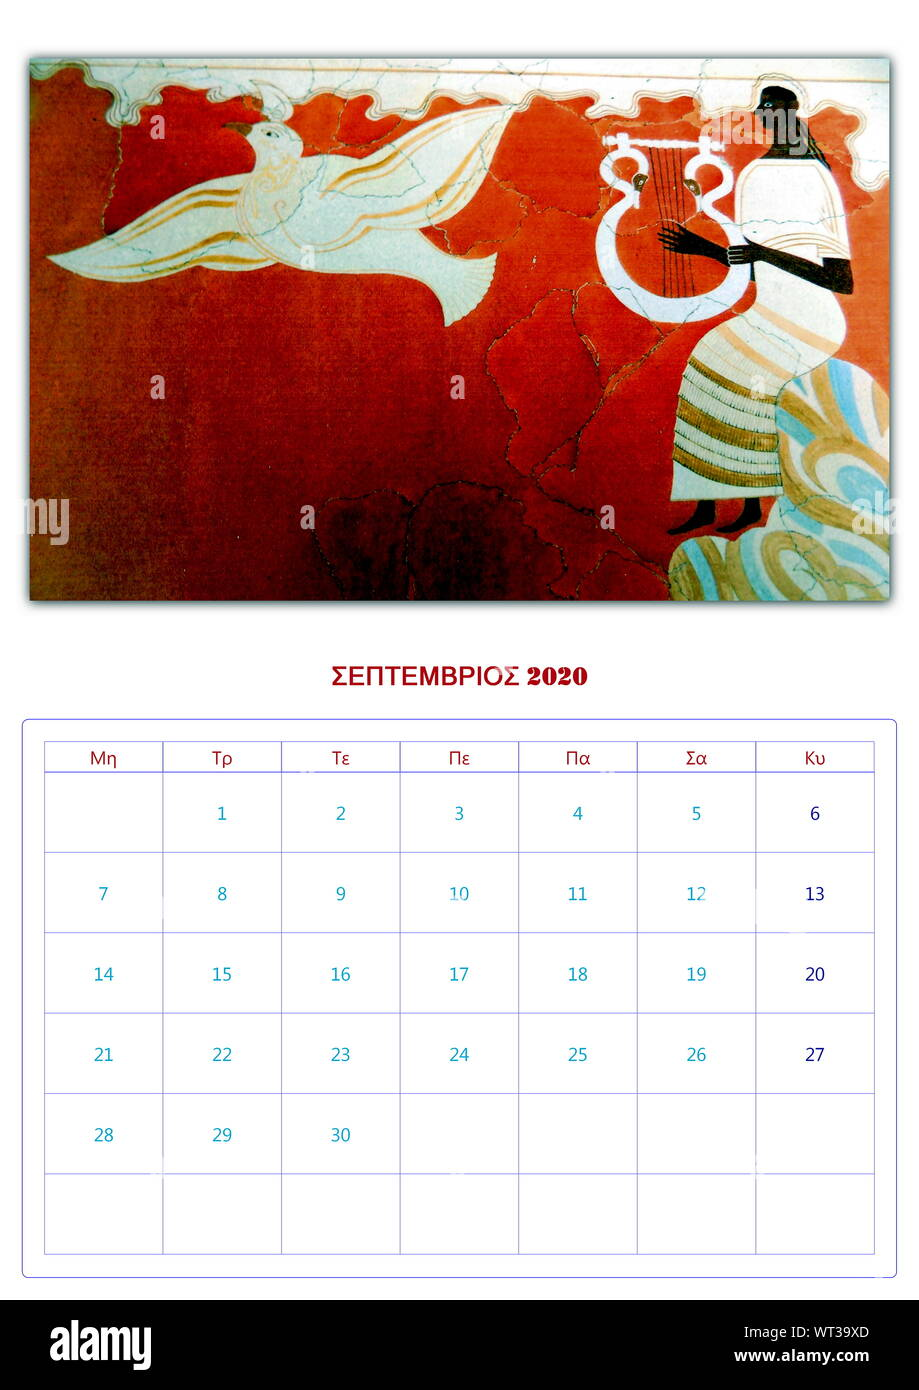 calendar, 2020, per month, 12 photos, fresco, ancient, Greek, Minoic, Mycenaean, collection 1 Stock Photo